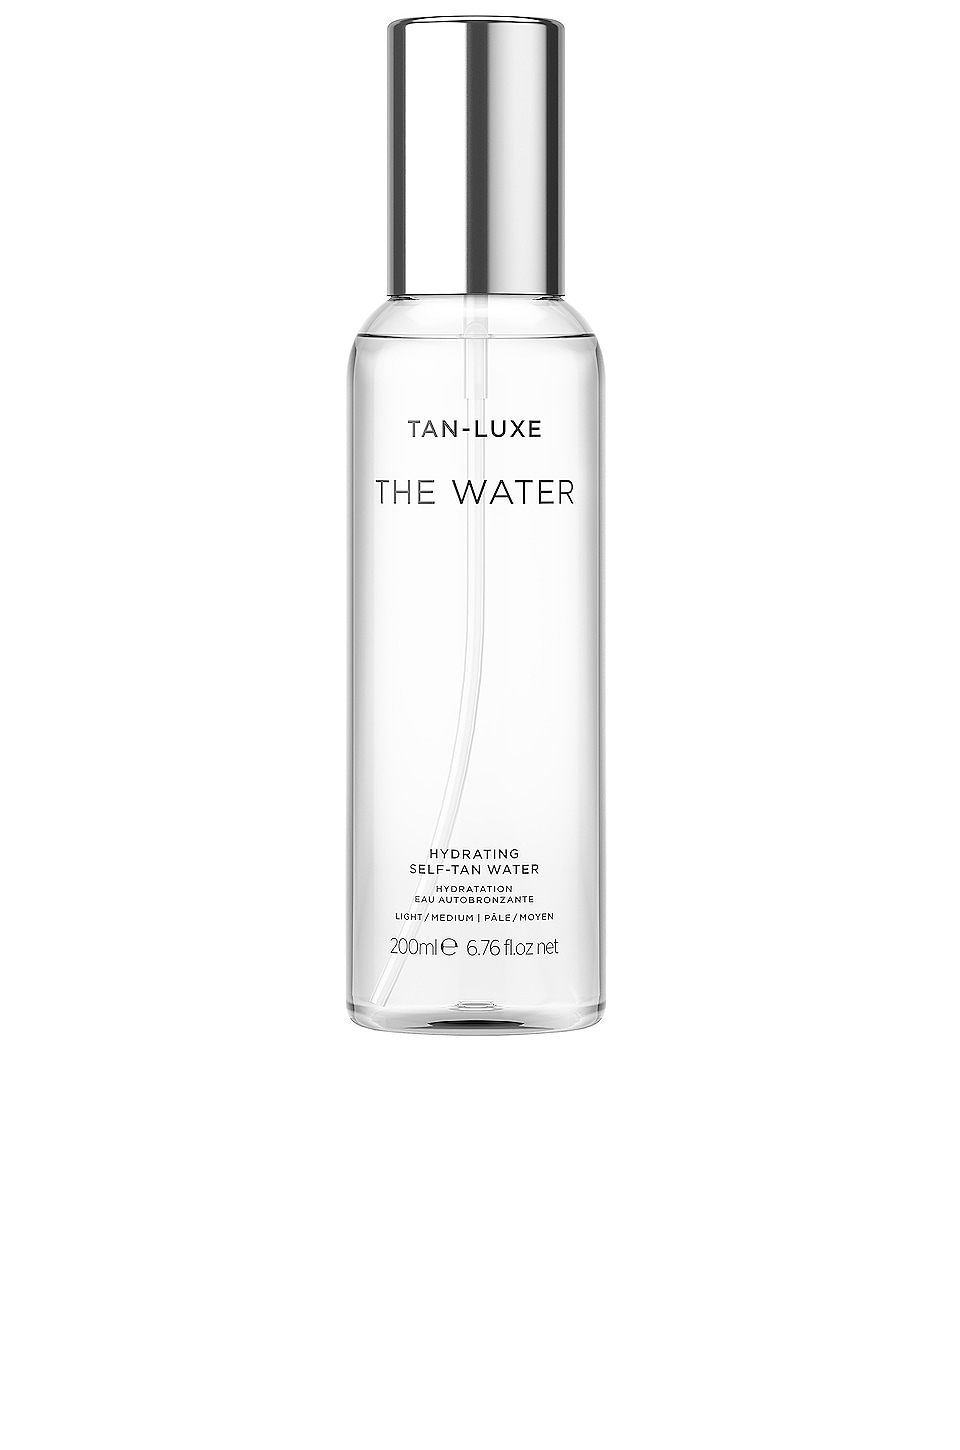 Tan Luxe The Water Hydrating Self-Tan Water in Light / Medium